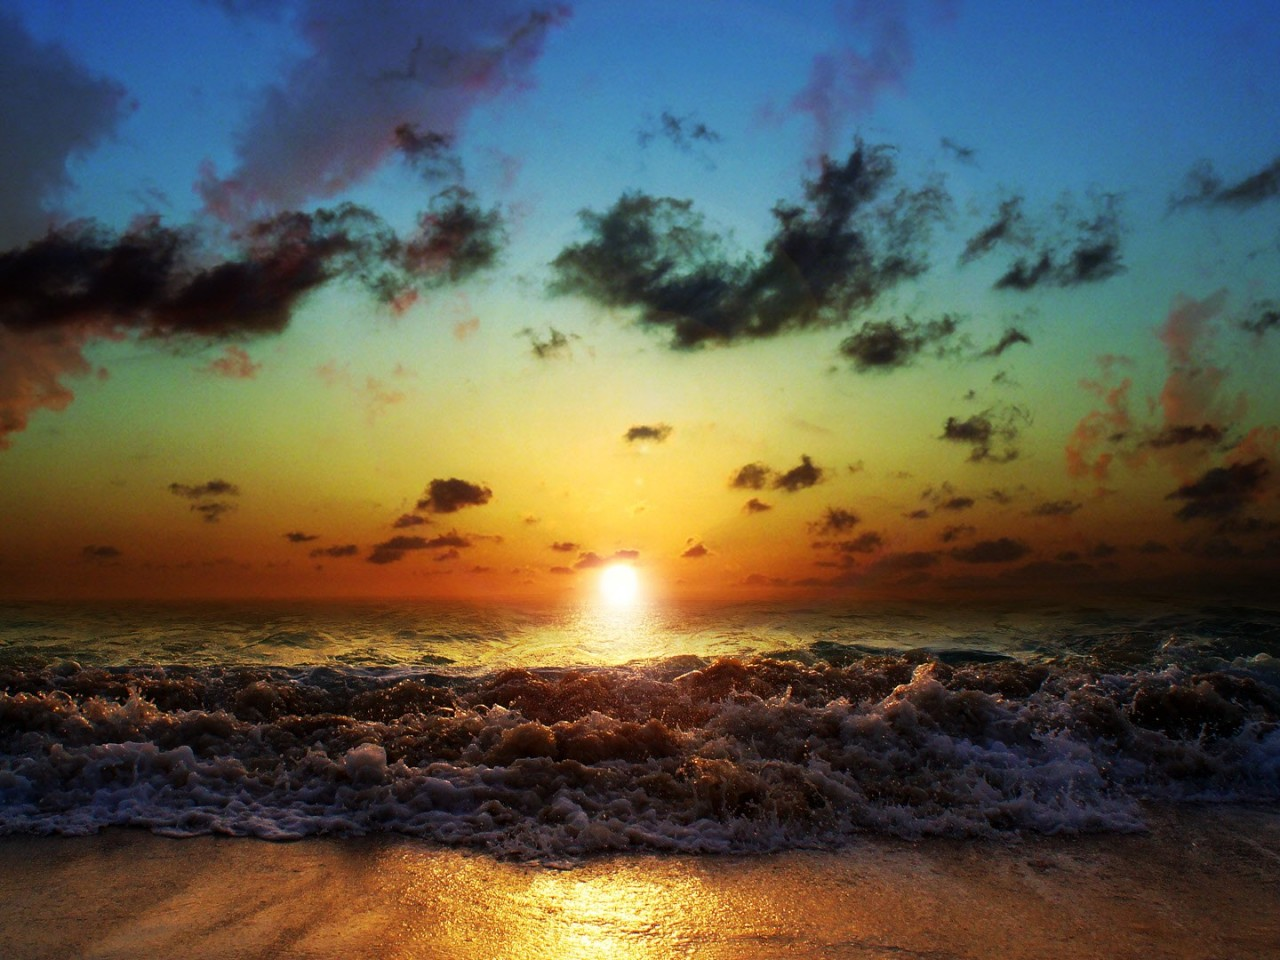 Sunset Sun And Sea Nature Wallpaper Hd Wallpapers